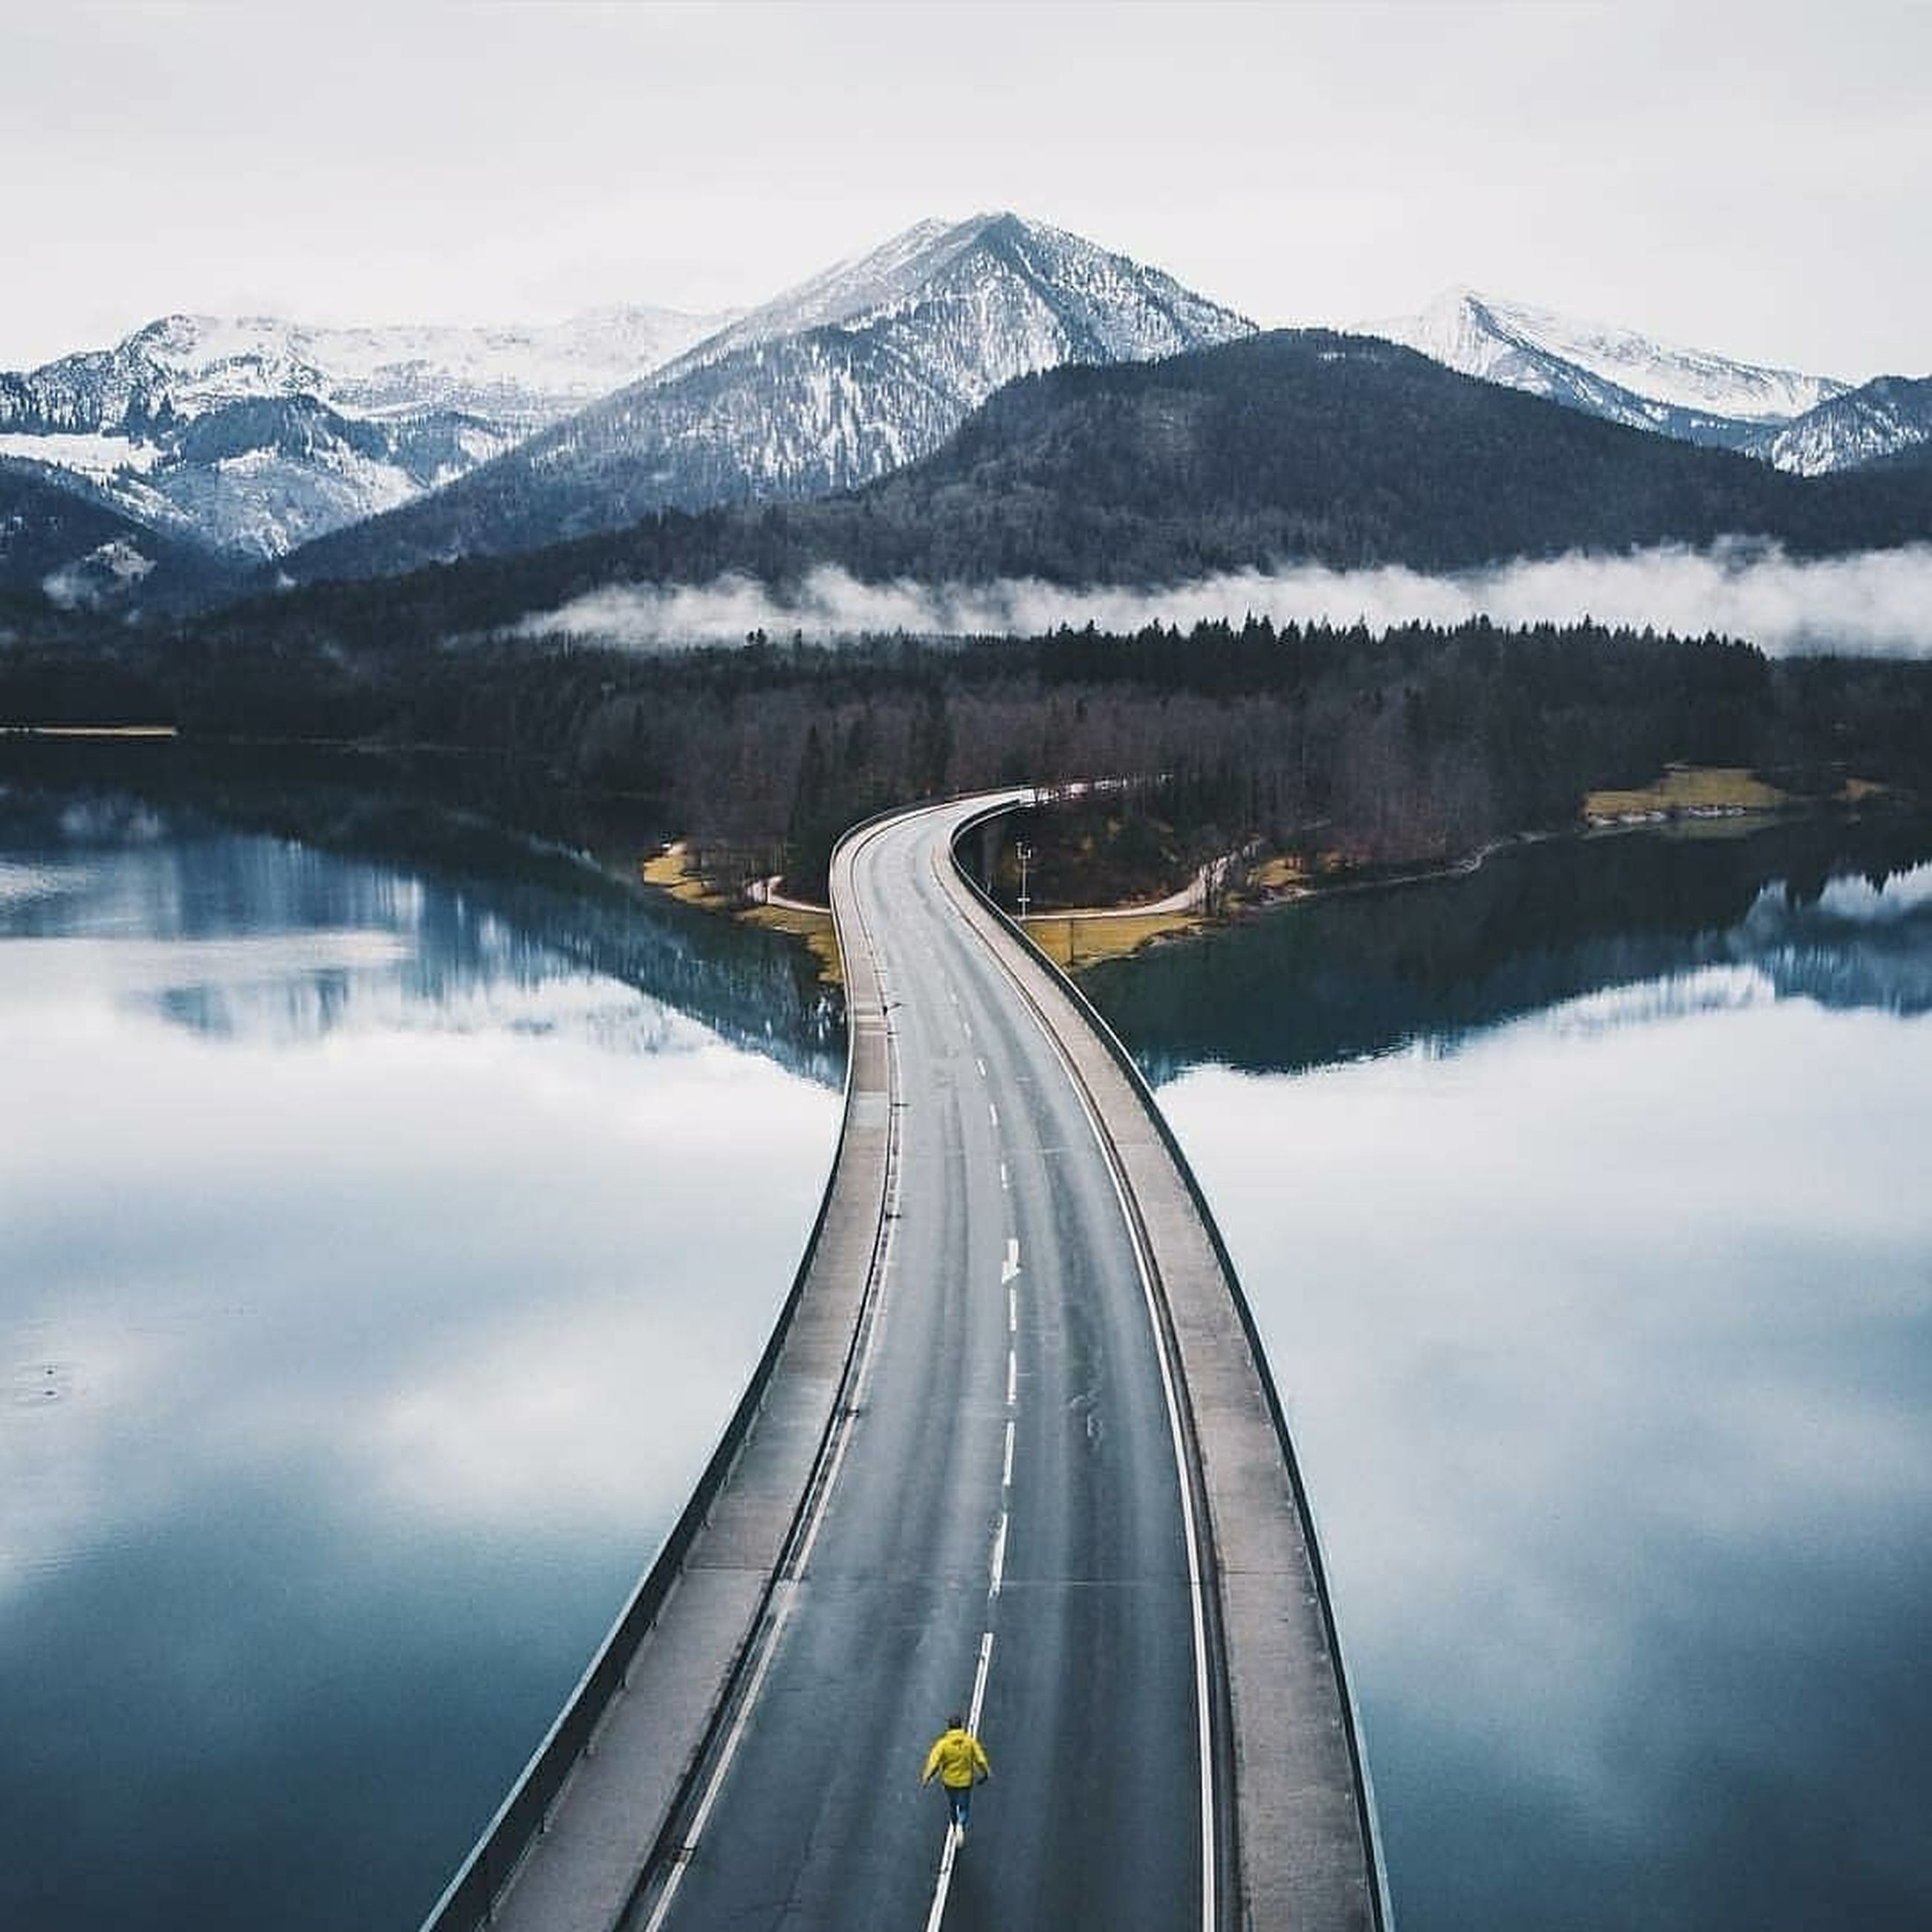 winter, mountain, snow, cold temperature, beauty in nature, scenics - nature, transportation, snowcapped mountain, nature, road, mountain range, sky, water, lake, day, non-urban scene, reflection, tranquility, no people, outdoors